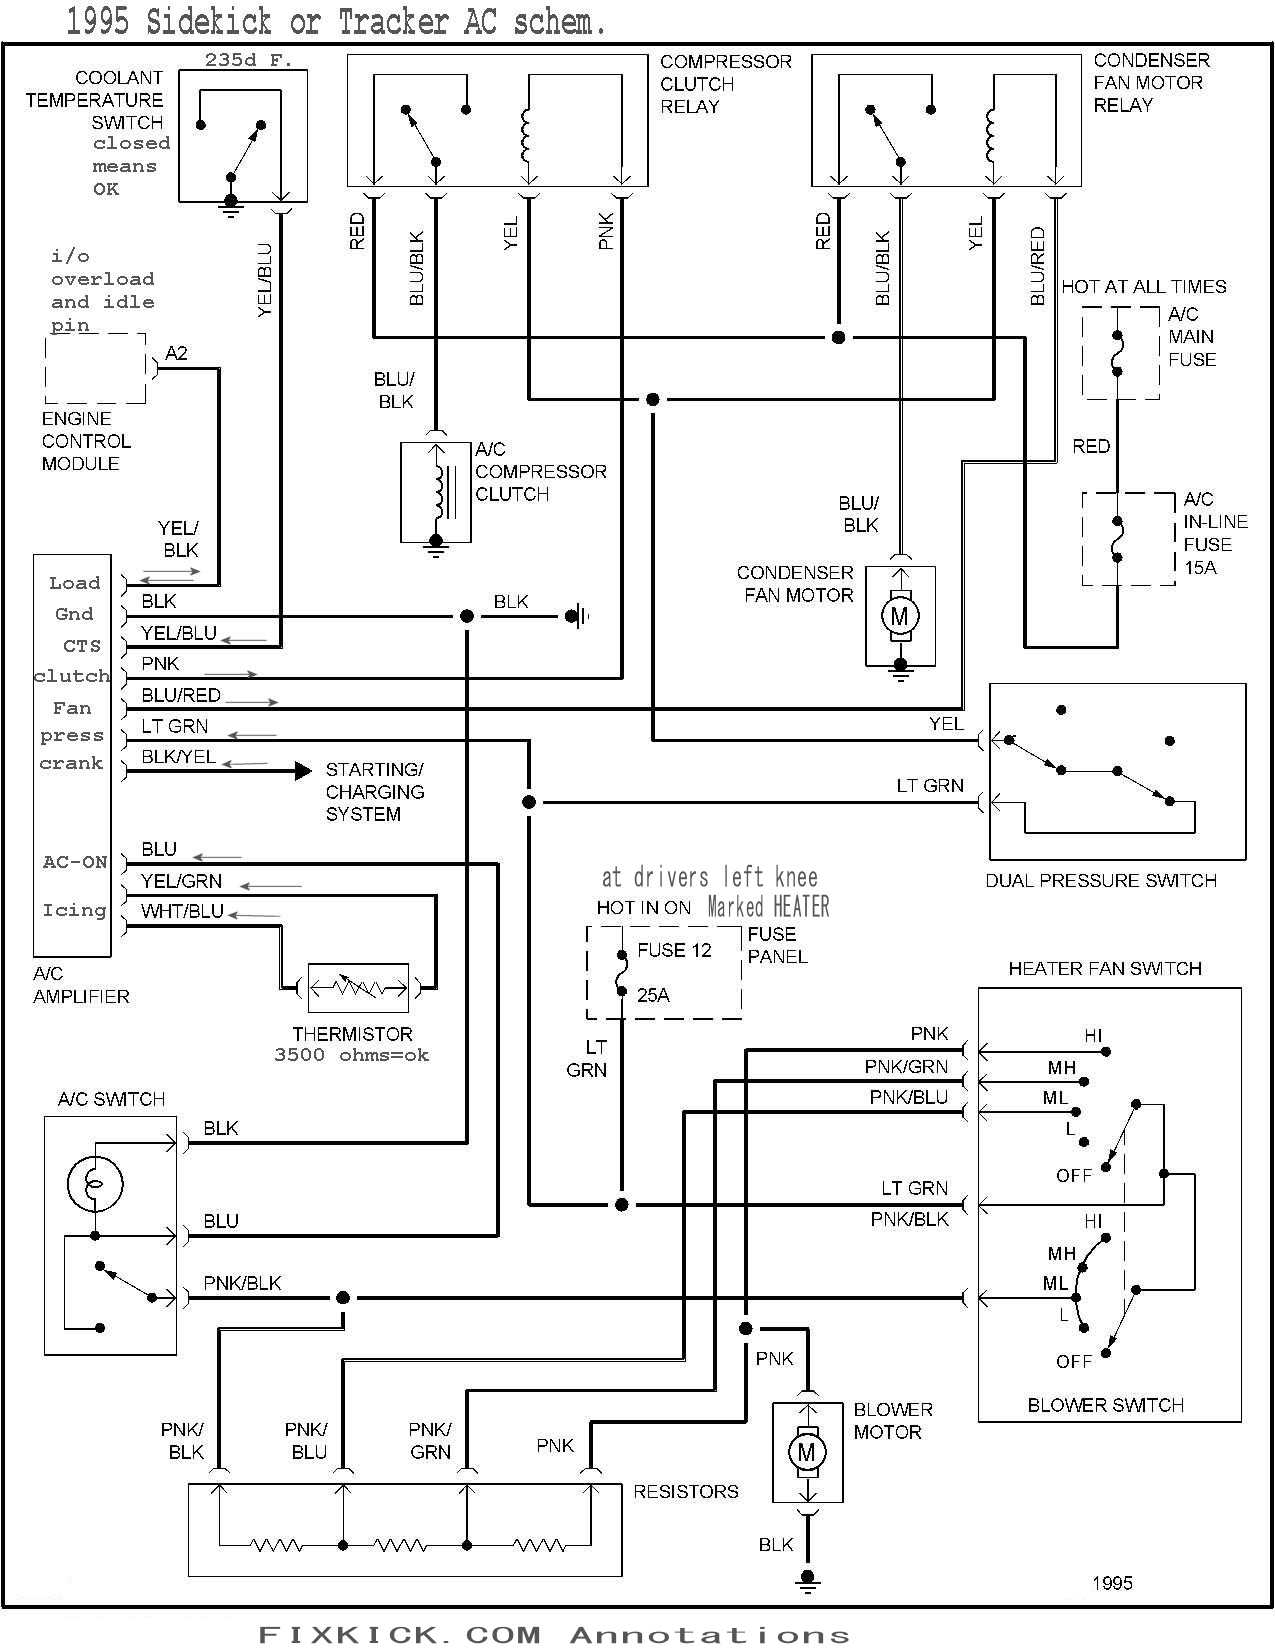 DIAGRAM] 91 Geo Tracker Wiring Diagram FULL Version HD Quality Wiring  Diagram - THROATDIAGRAM.SAINTMIHIEL-TOURISME.FRSaintmihiel-tourisme.fr